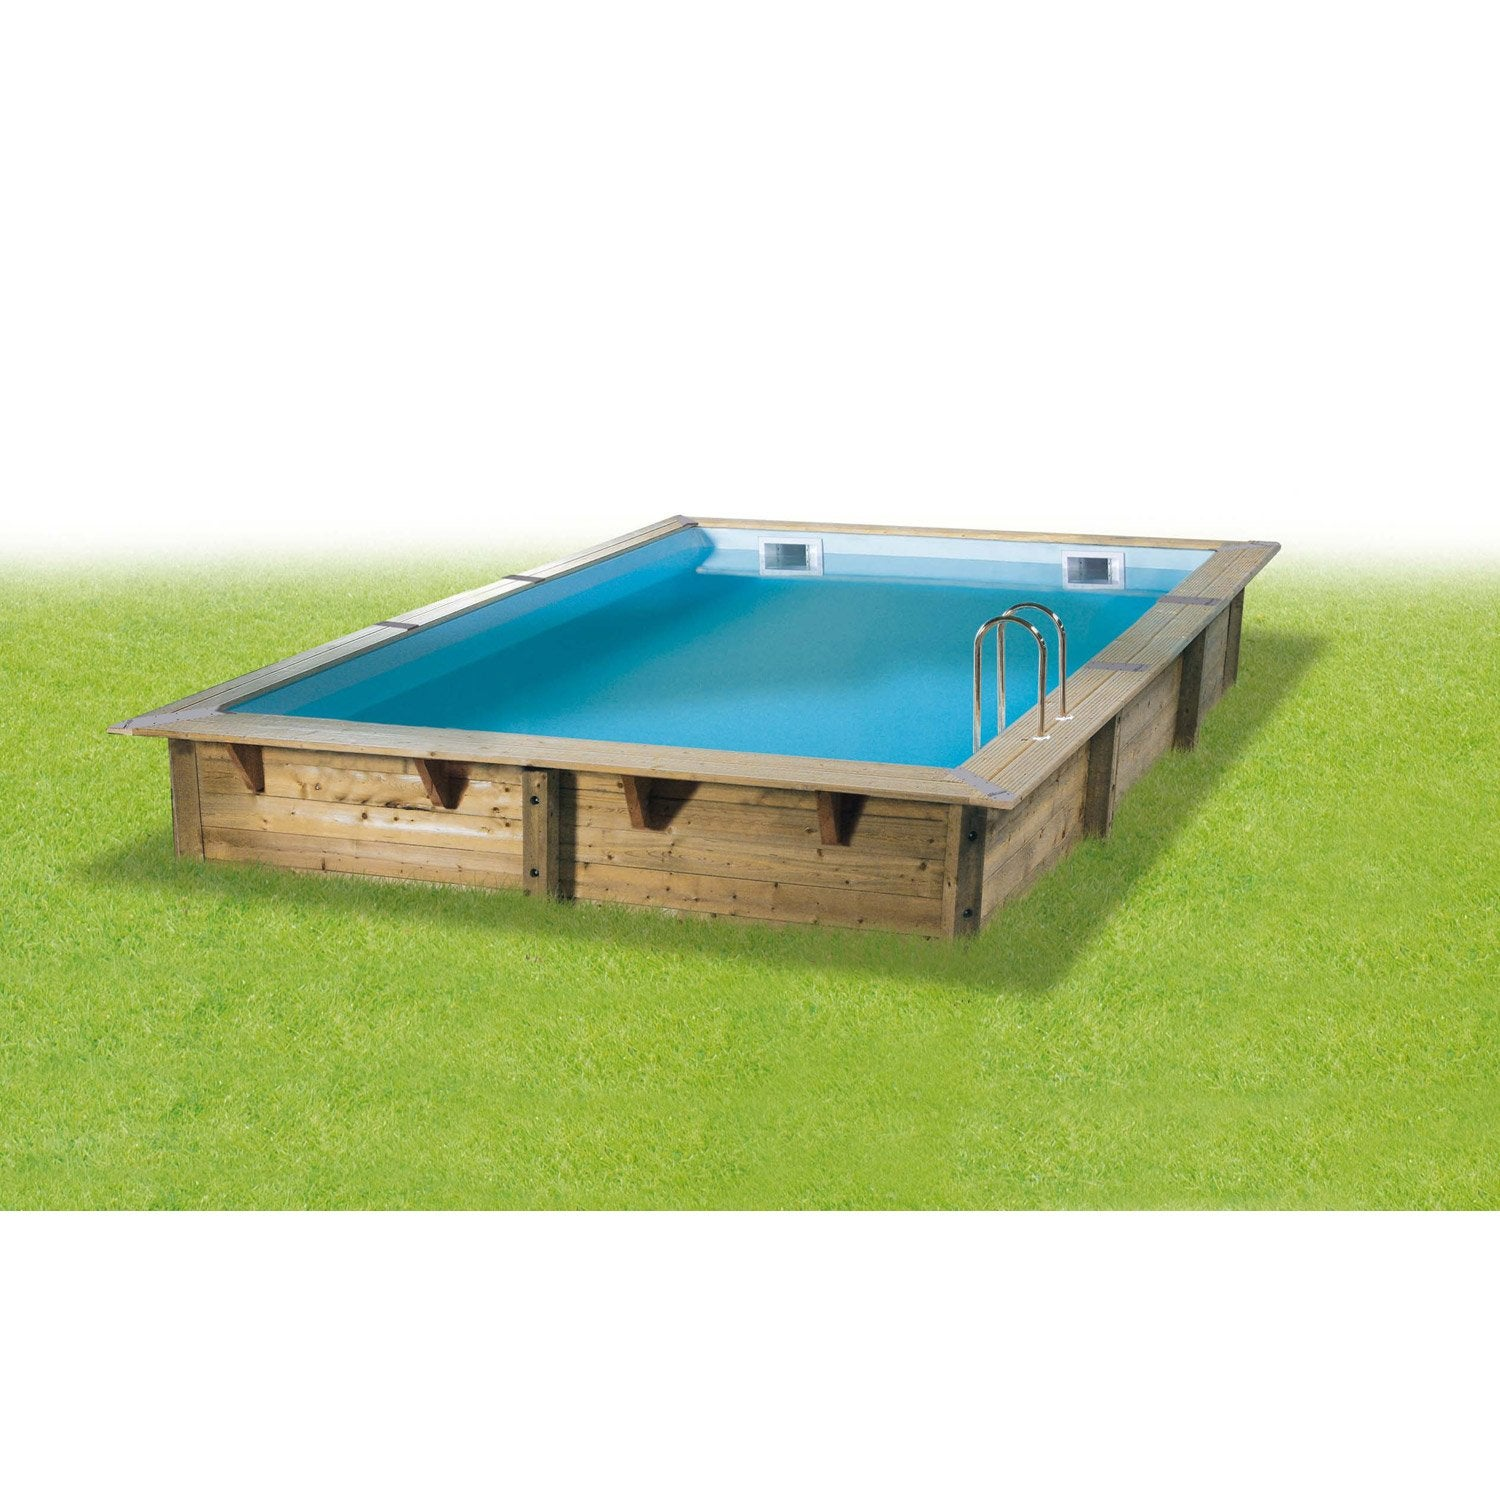 Destockage piscine bois for Destockage piscine bois